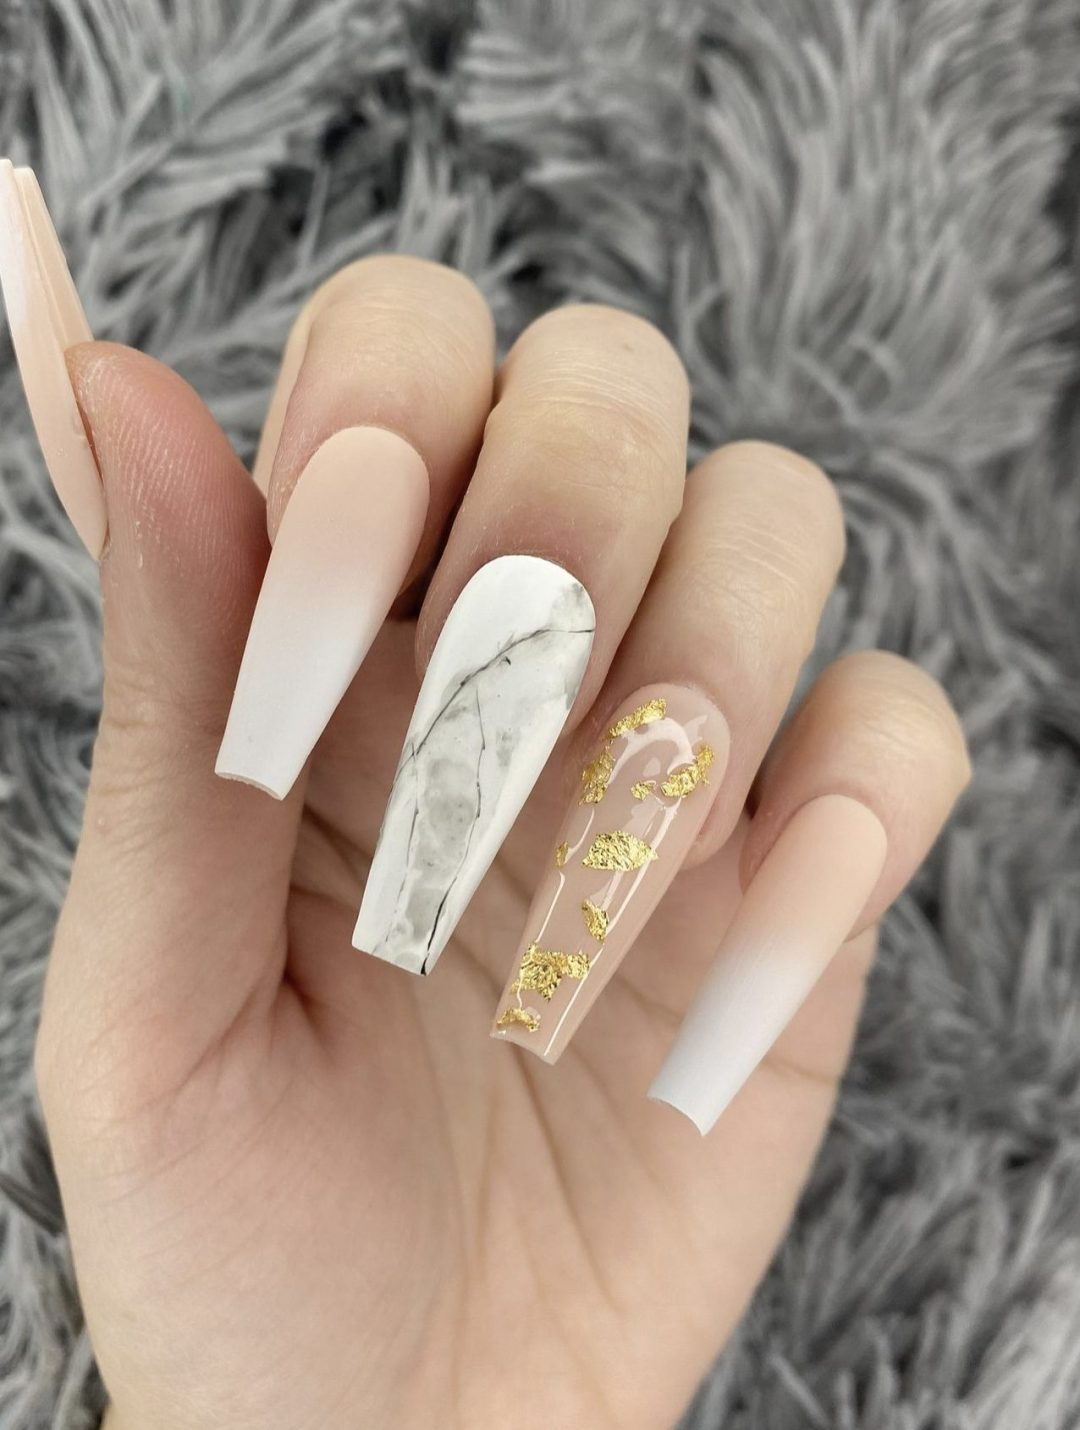 White and nude ombre nails with marble and gold foil nail art